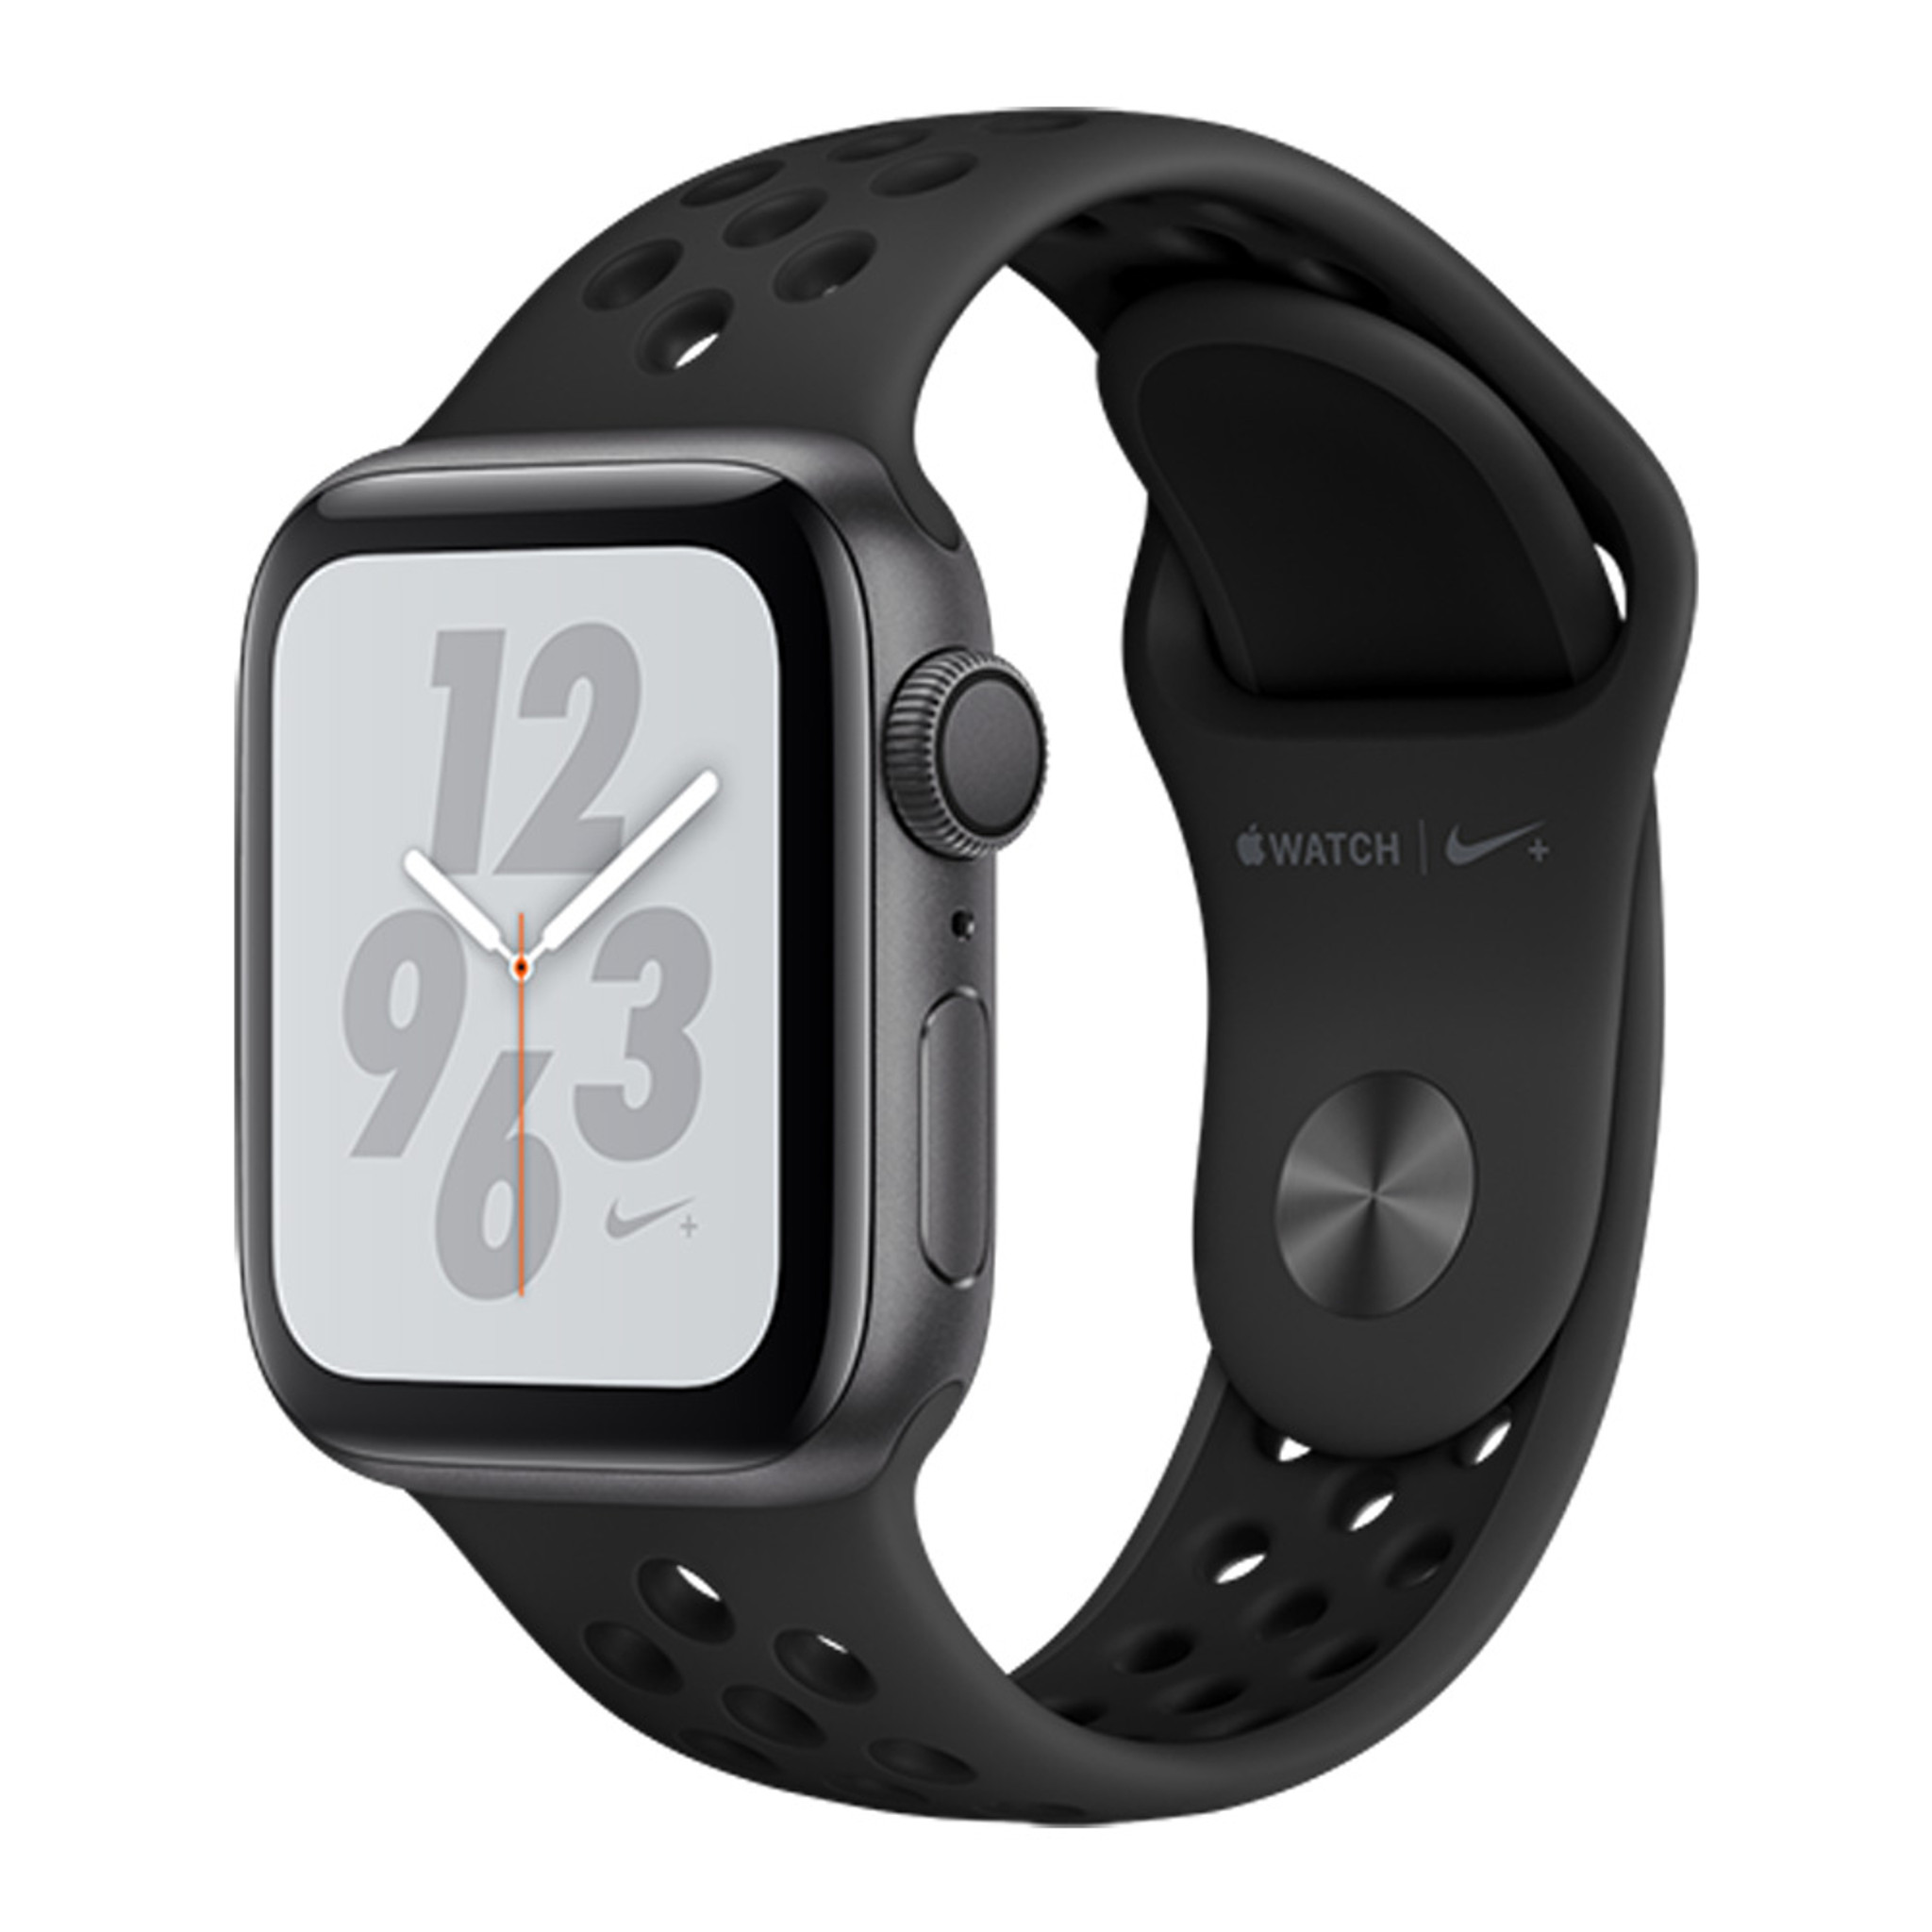 Biblia estaño blanco como la nieve  Apple Watch Nike Plus Series 4 GPS, 40mm Space Grey Aluminium Case with  Anthracite Nike Sport Band - The Wireless Age